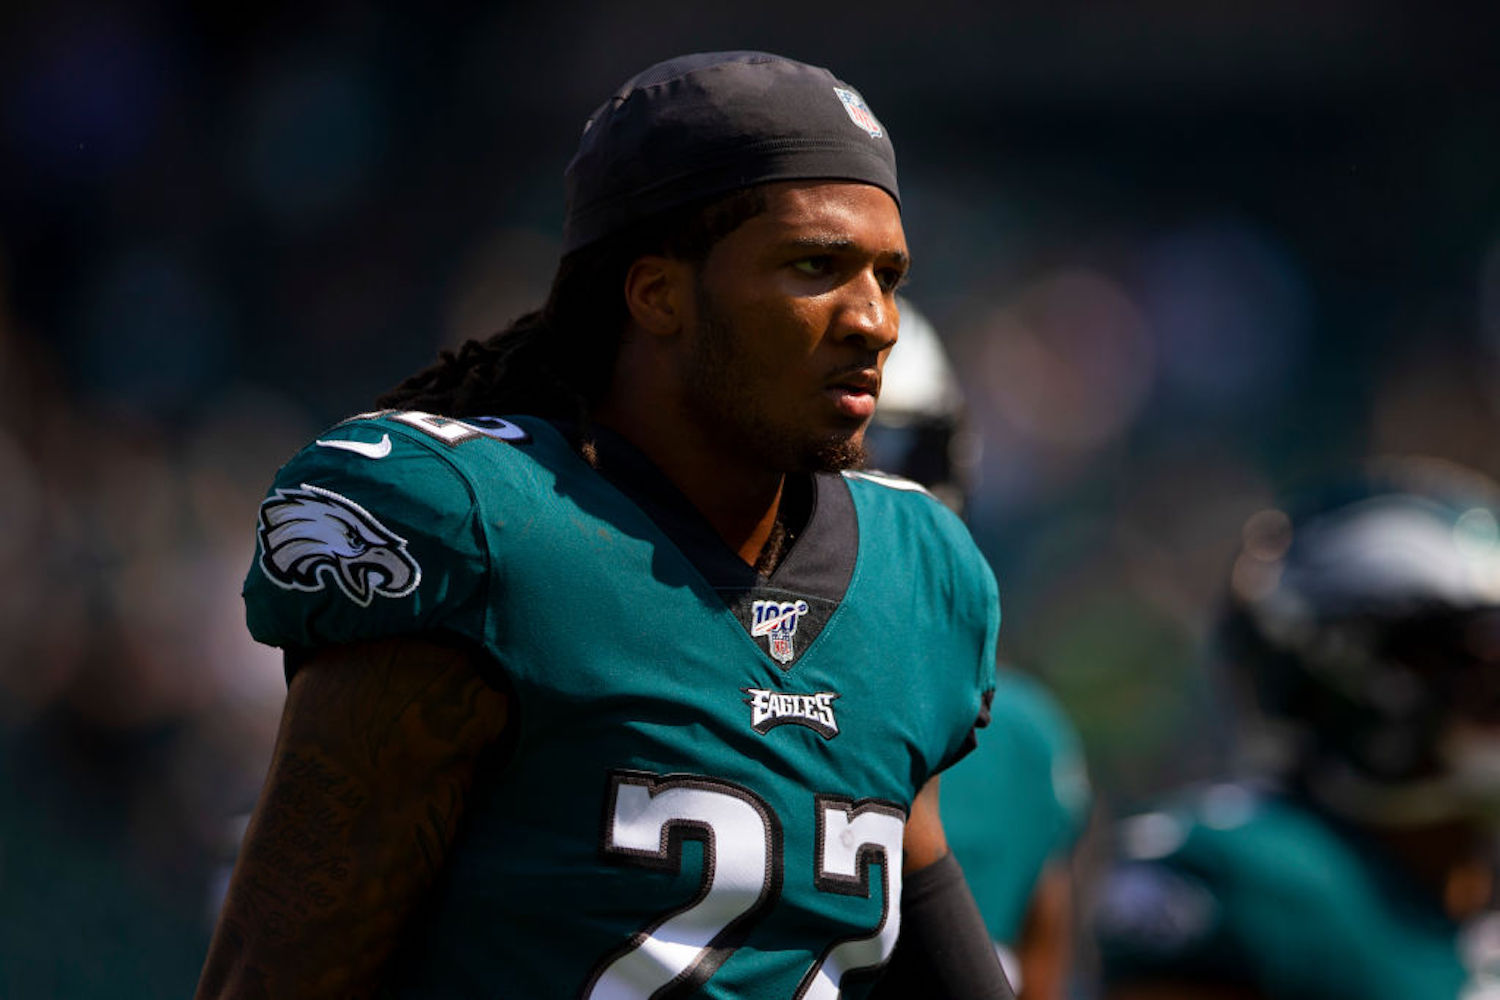 Sidney Jones was supposed to be the answer to the Eagles' longtime cornerback woes, but he didn't even last four seasons in Philadelphia.